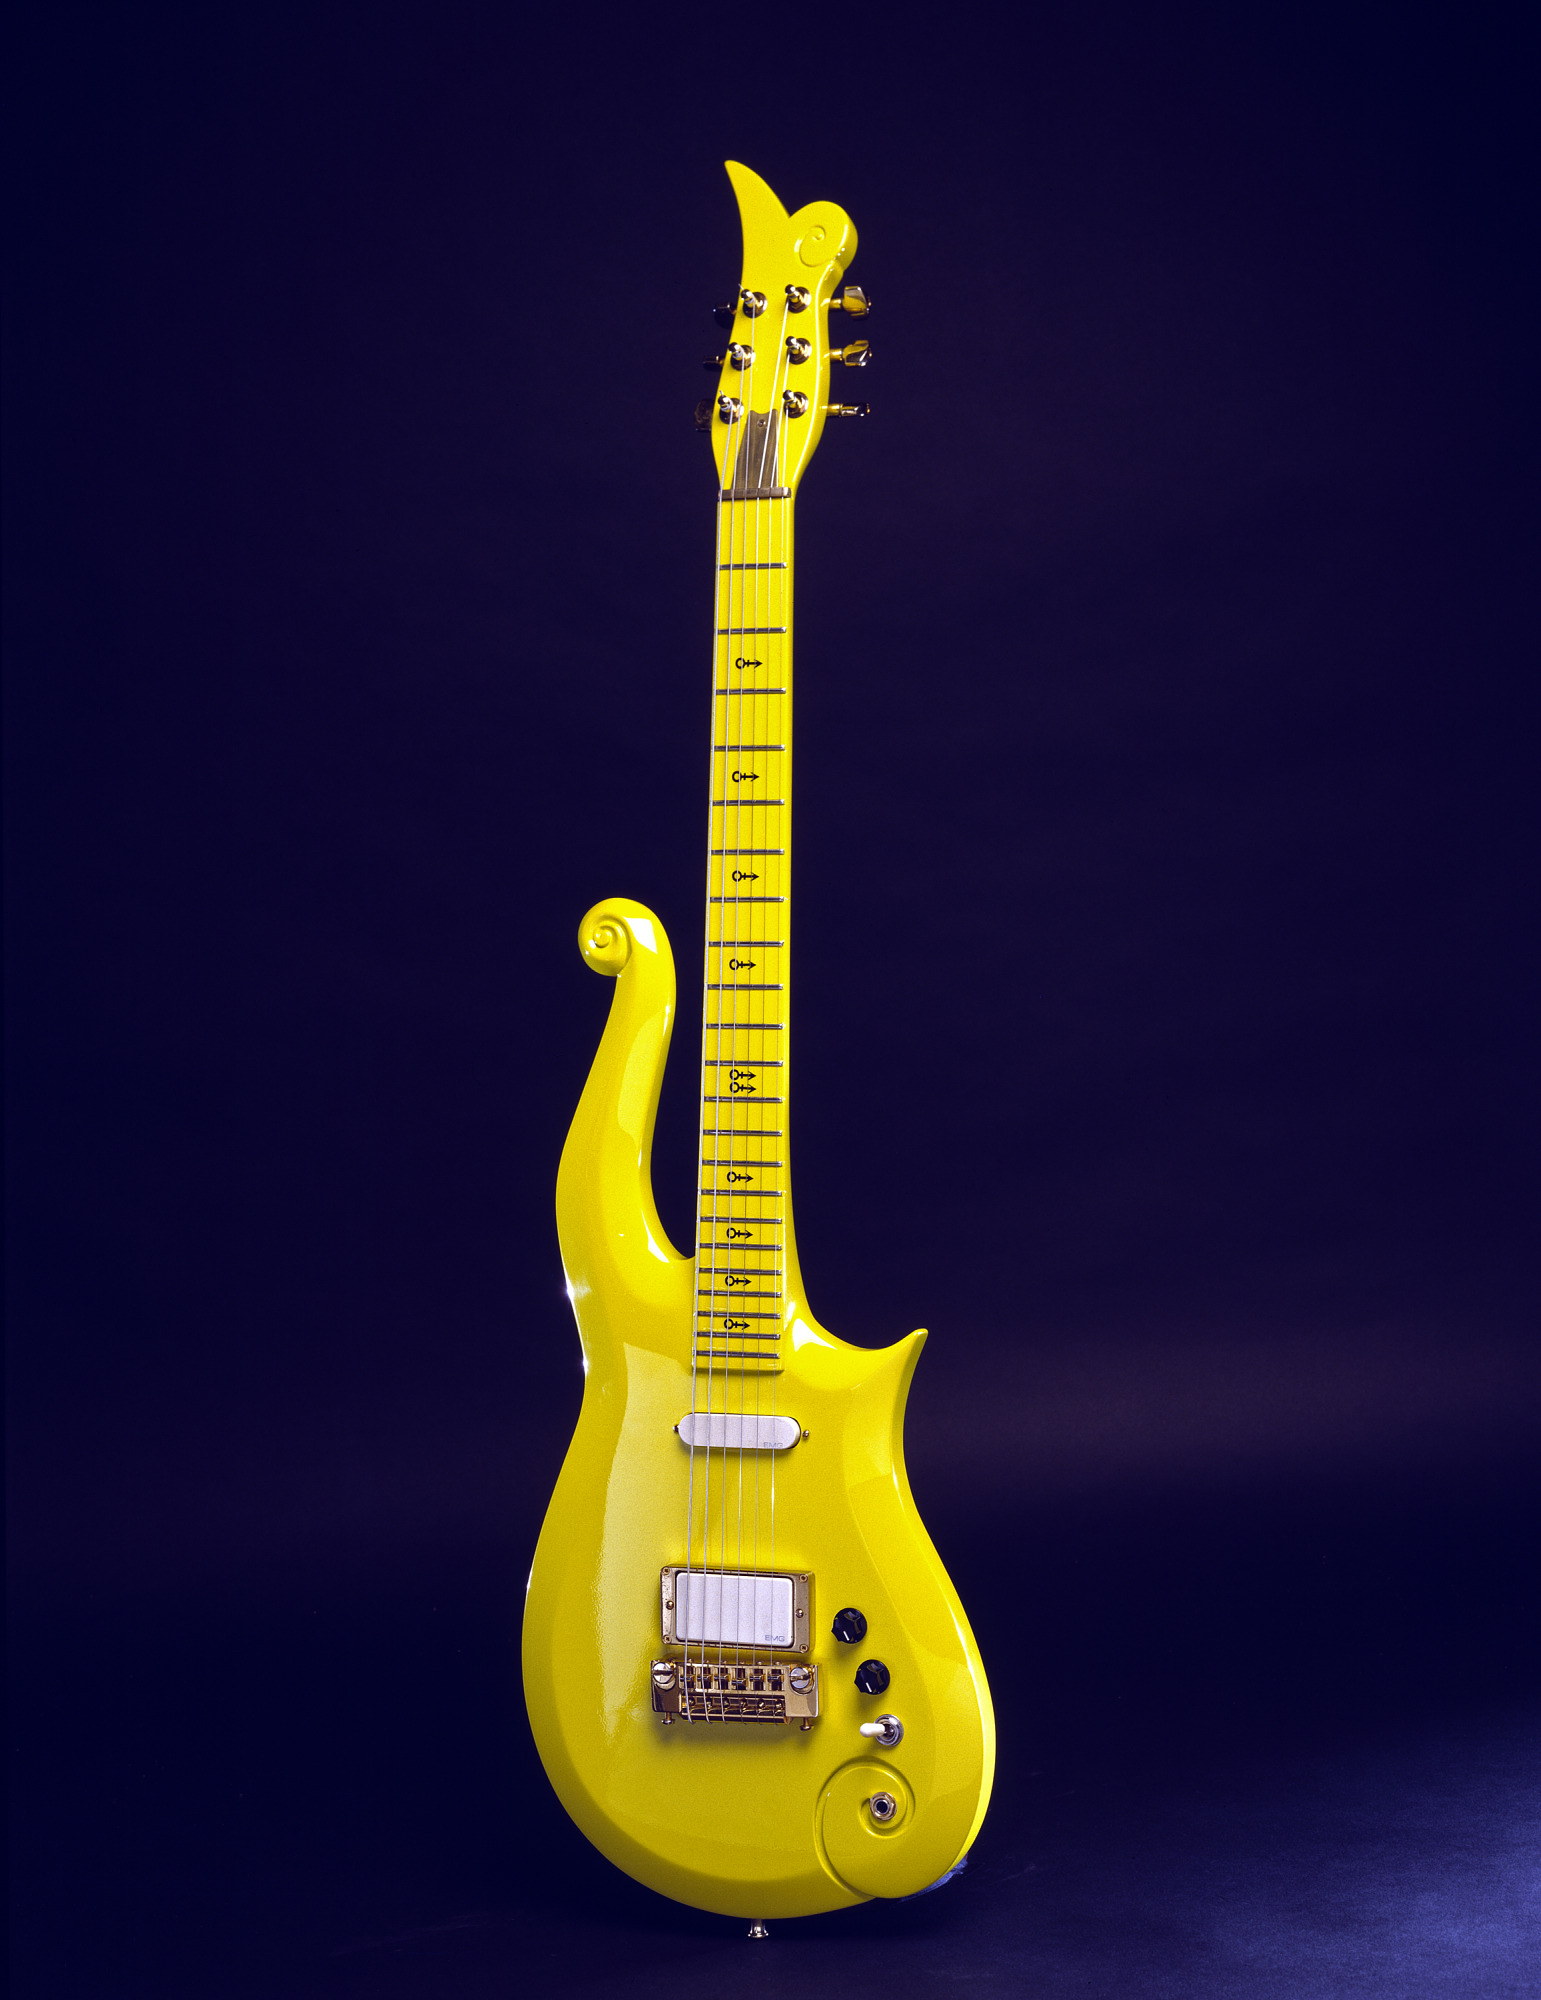 Prince's Yellow Cloud Electric Guitar - Image version 1